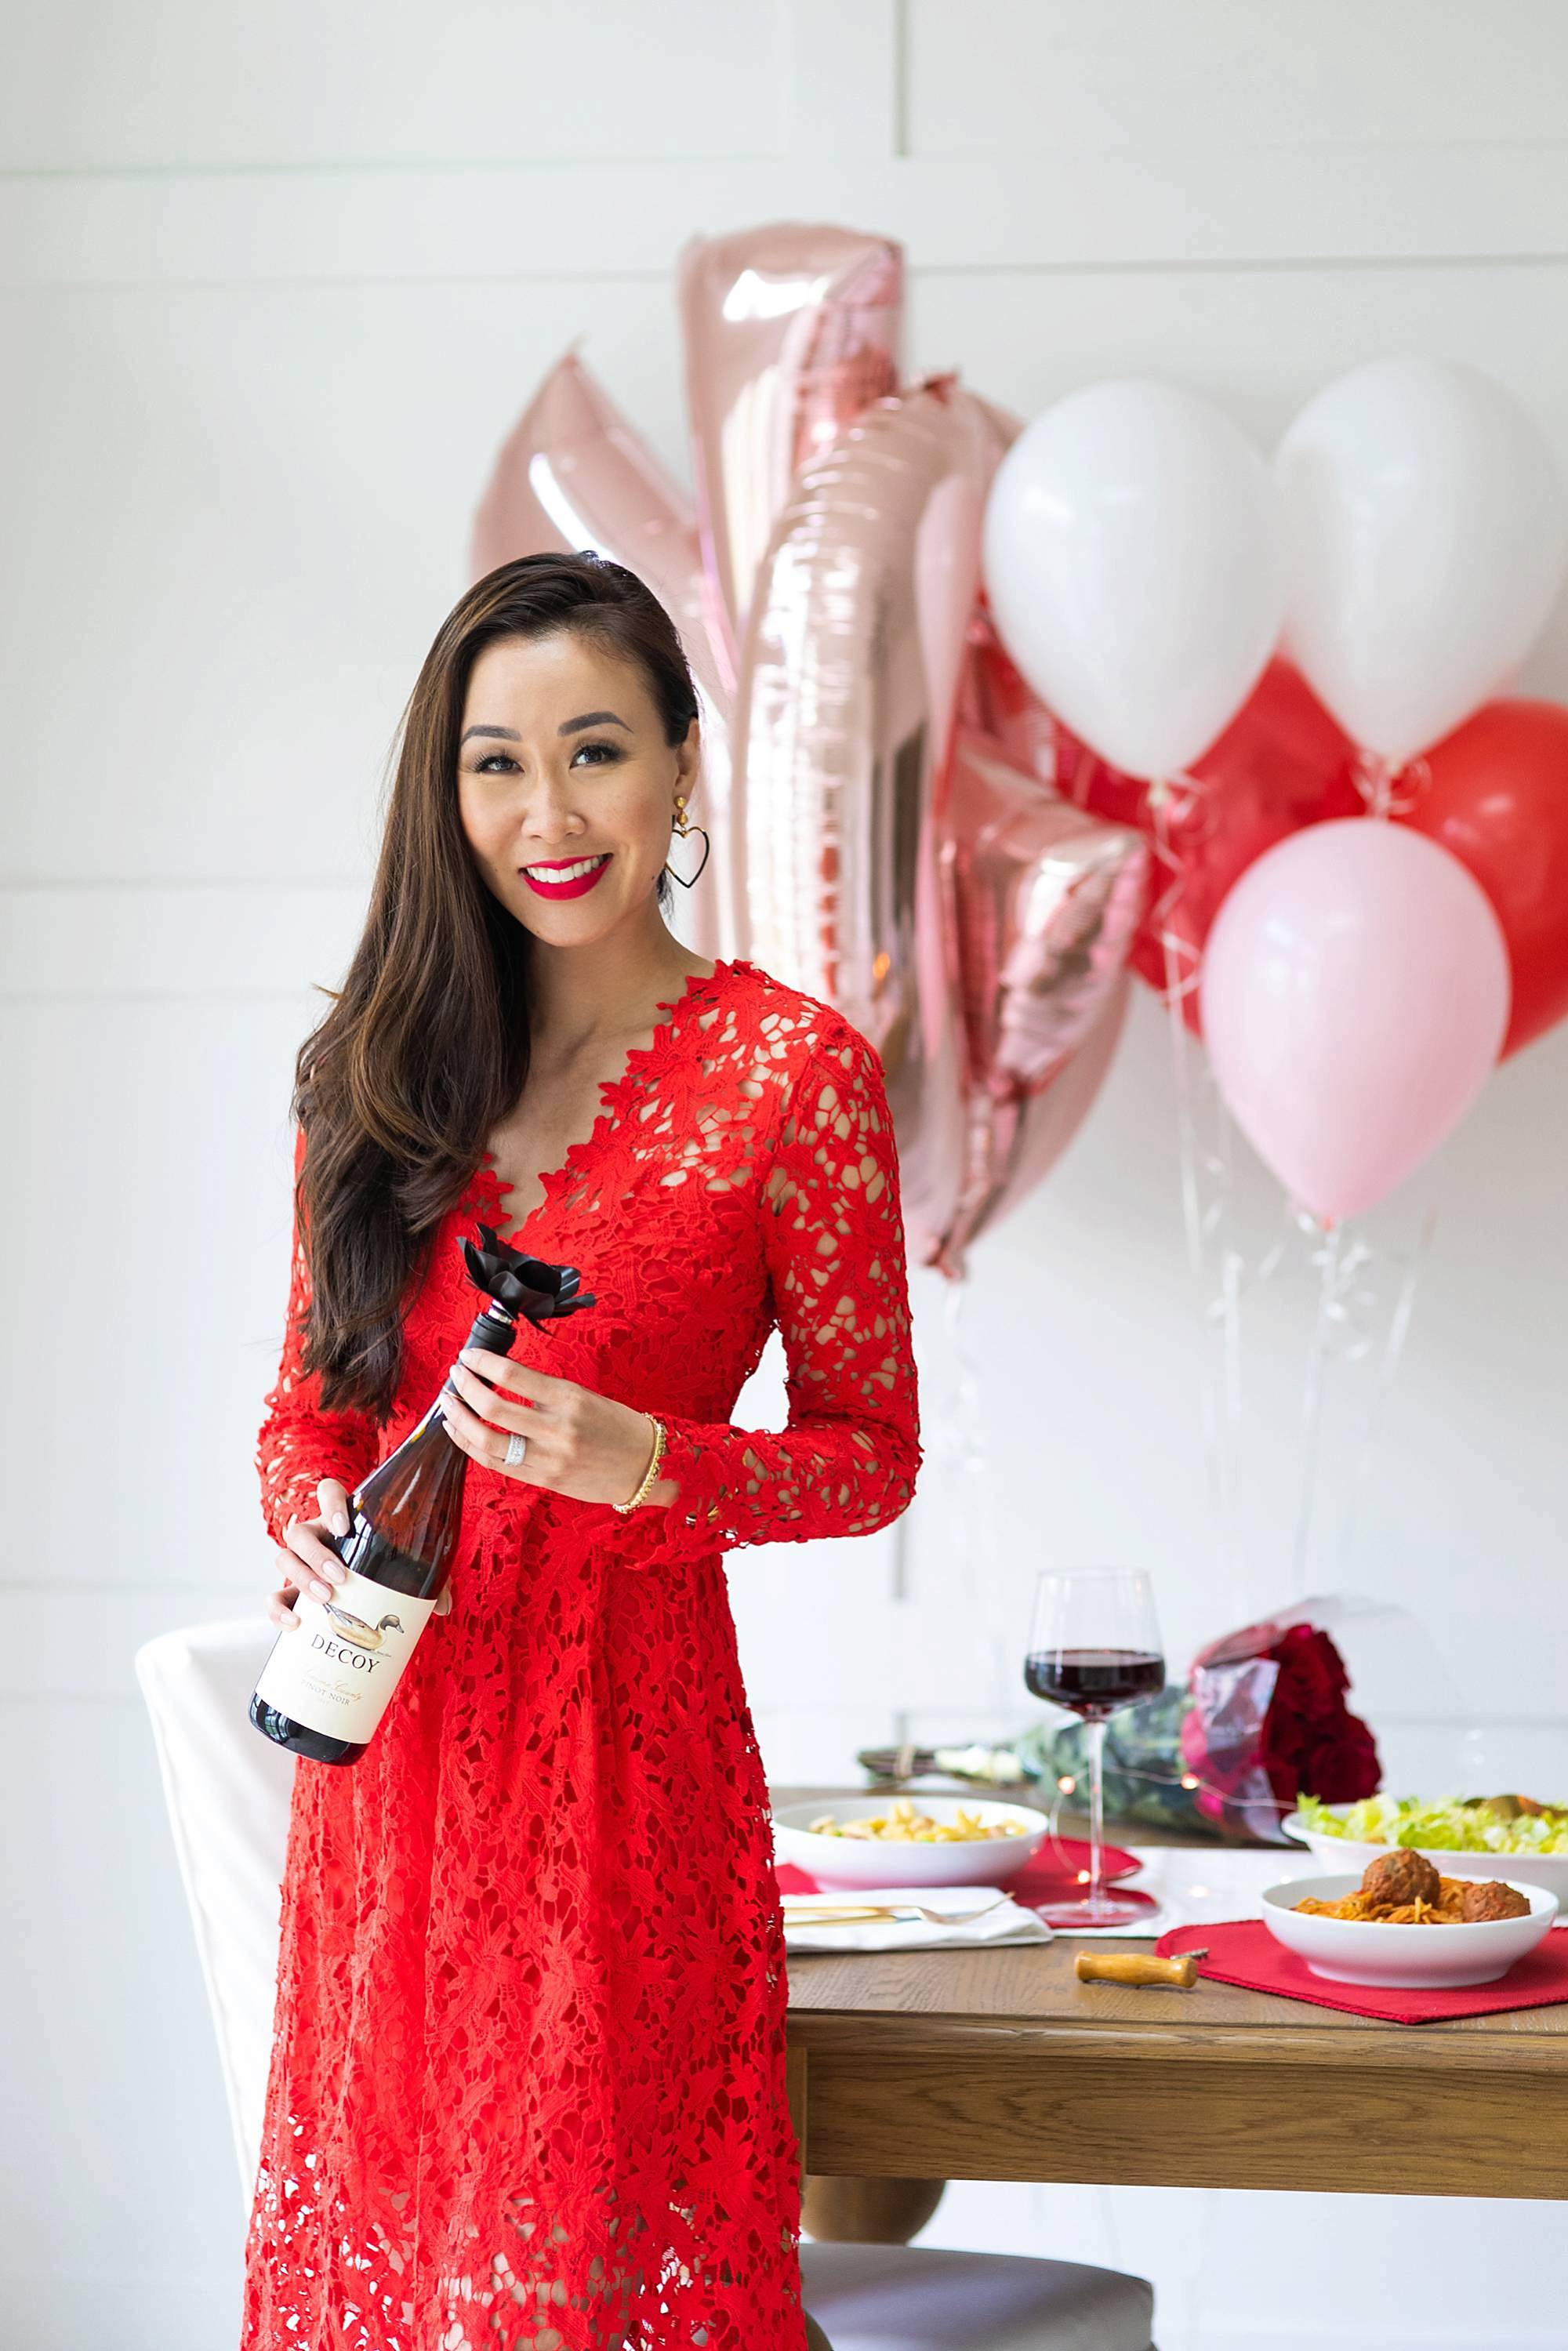 red lace dress for romantic valentines day dinner with decoy wine